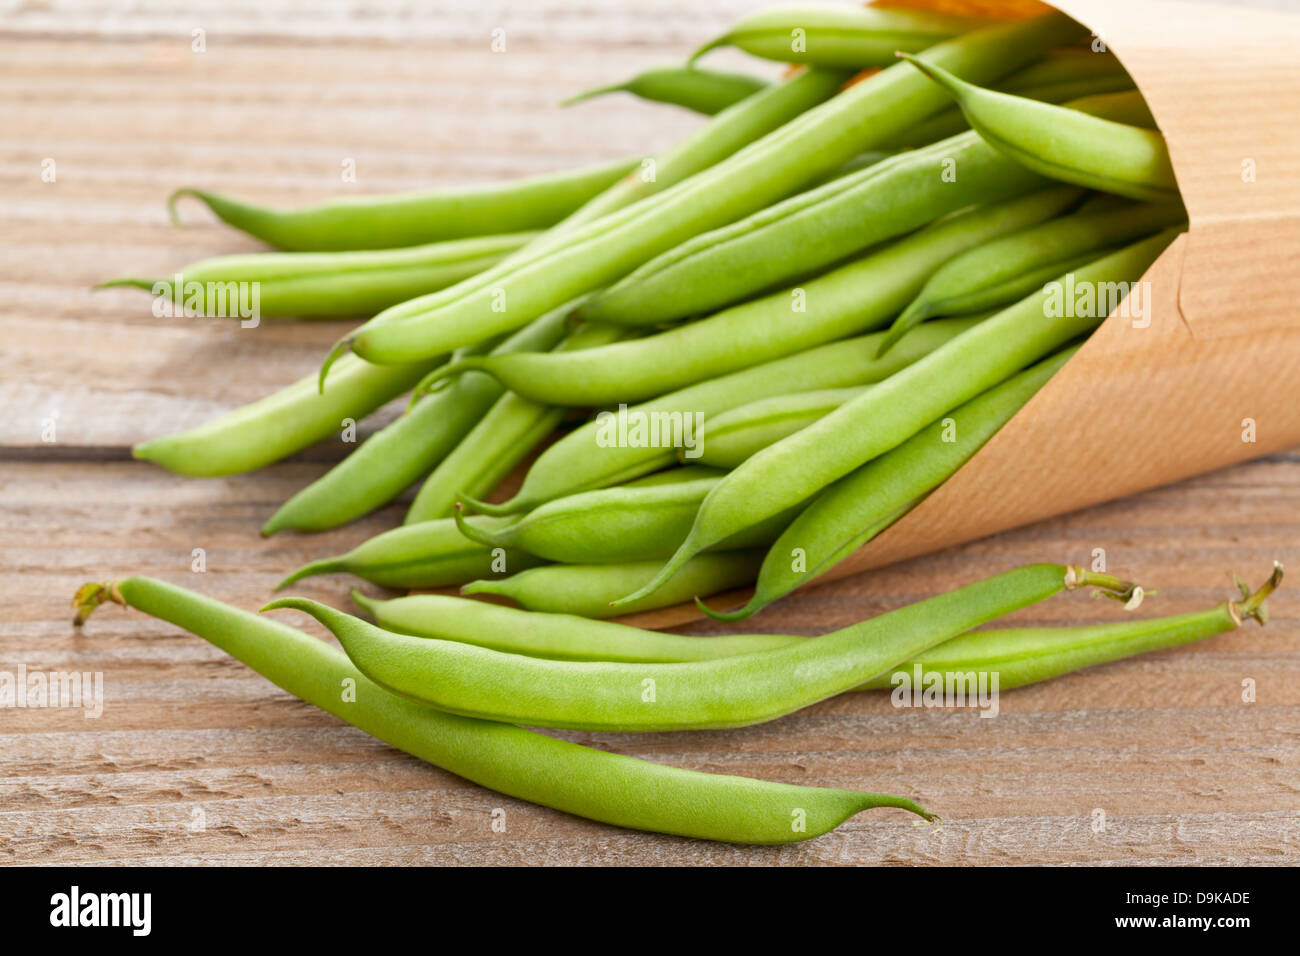 Organic pole beans in paper bag on wooden table - Stock Image